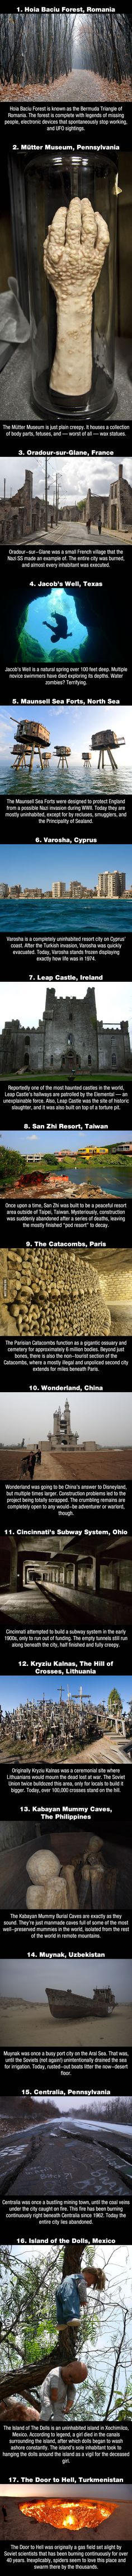 Post with 1932 votes and 46010 views. Shared by The 17 Scariest Places On Earth. Dare To Live In Any One Of Them For A Month For 1 Million? Scary Places, Haunted Places, Abandoned Places, Places To Travel, Places To See, Creepy Stories, All Nature, Wtf Fun Facts, Around The Worlds